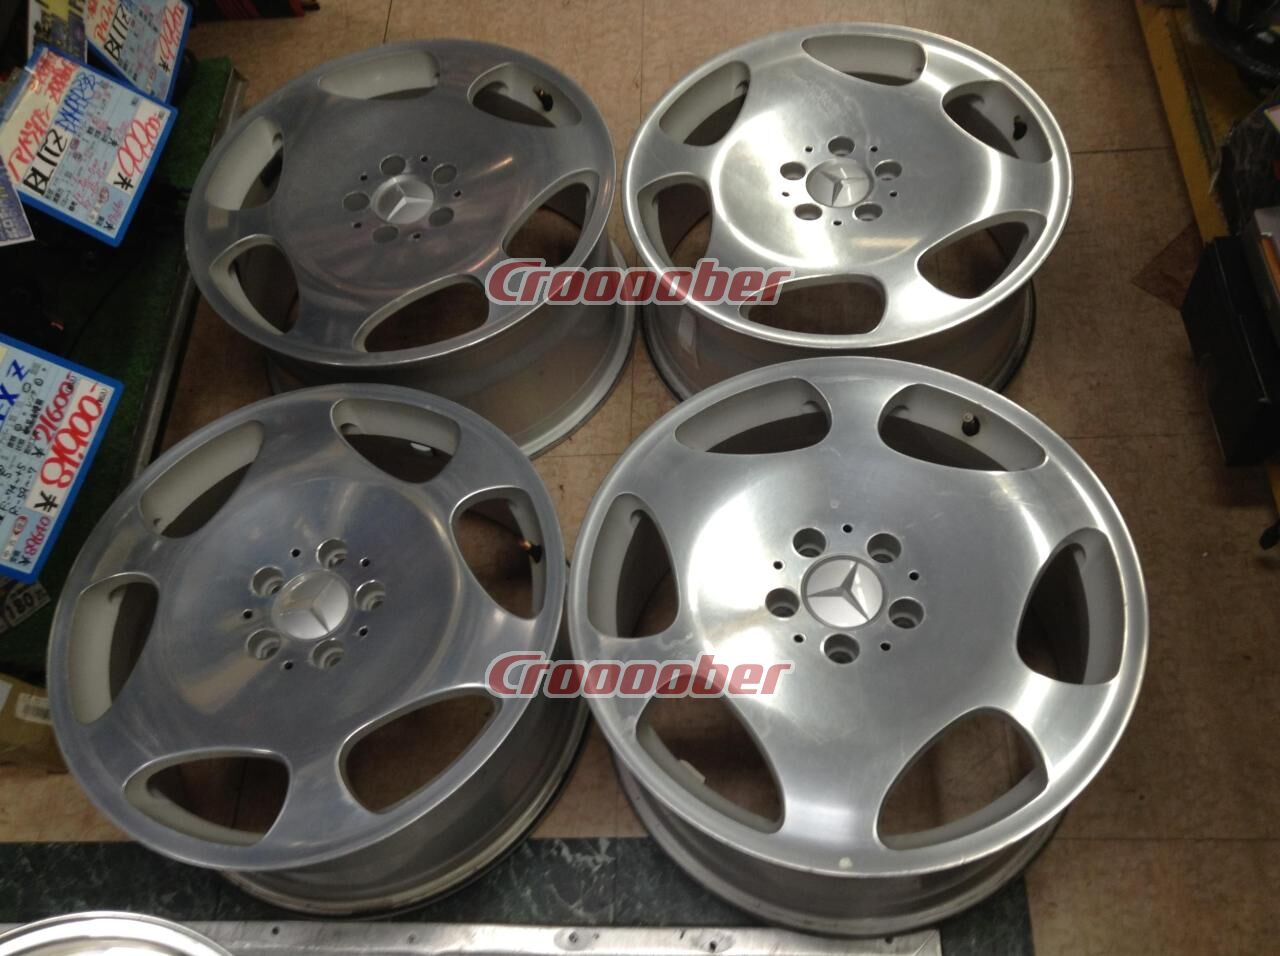 Mercedes Rims For Sale >> Mercedes Benz W220 S600 Late Genuine Wheel Down Final Disposal Price Front 8 0jx18 44 Rear 9 0jx18 46112 5h For Sale Croooober